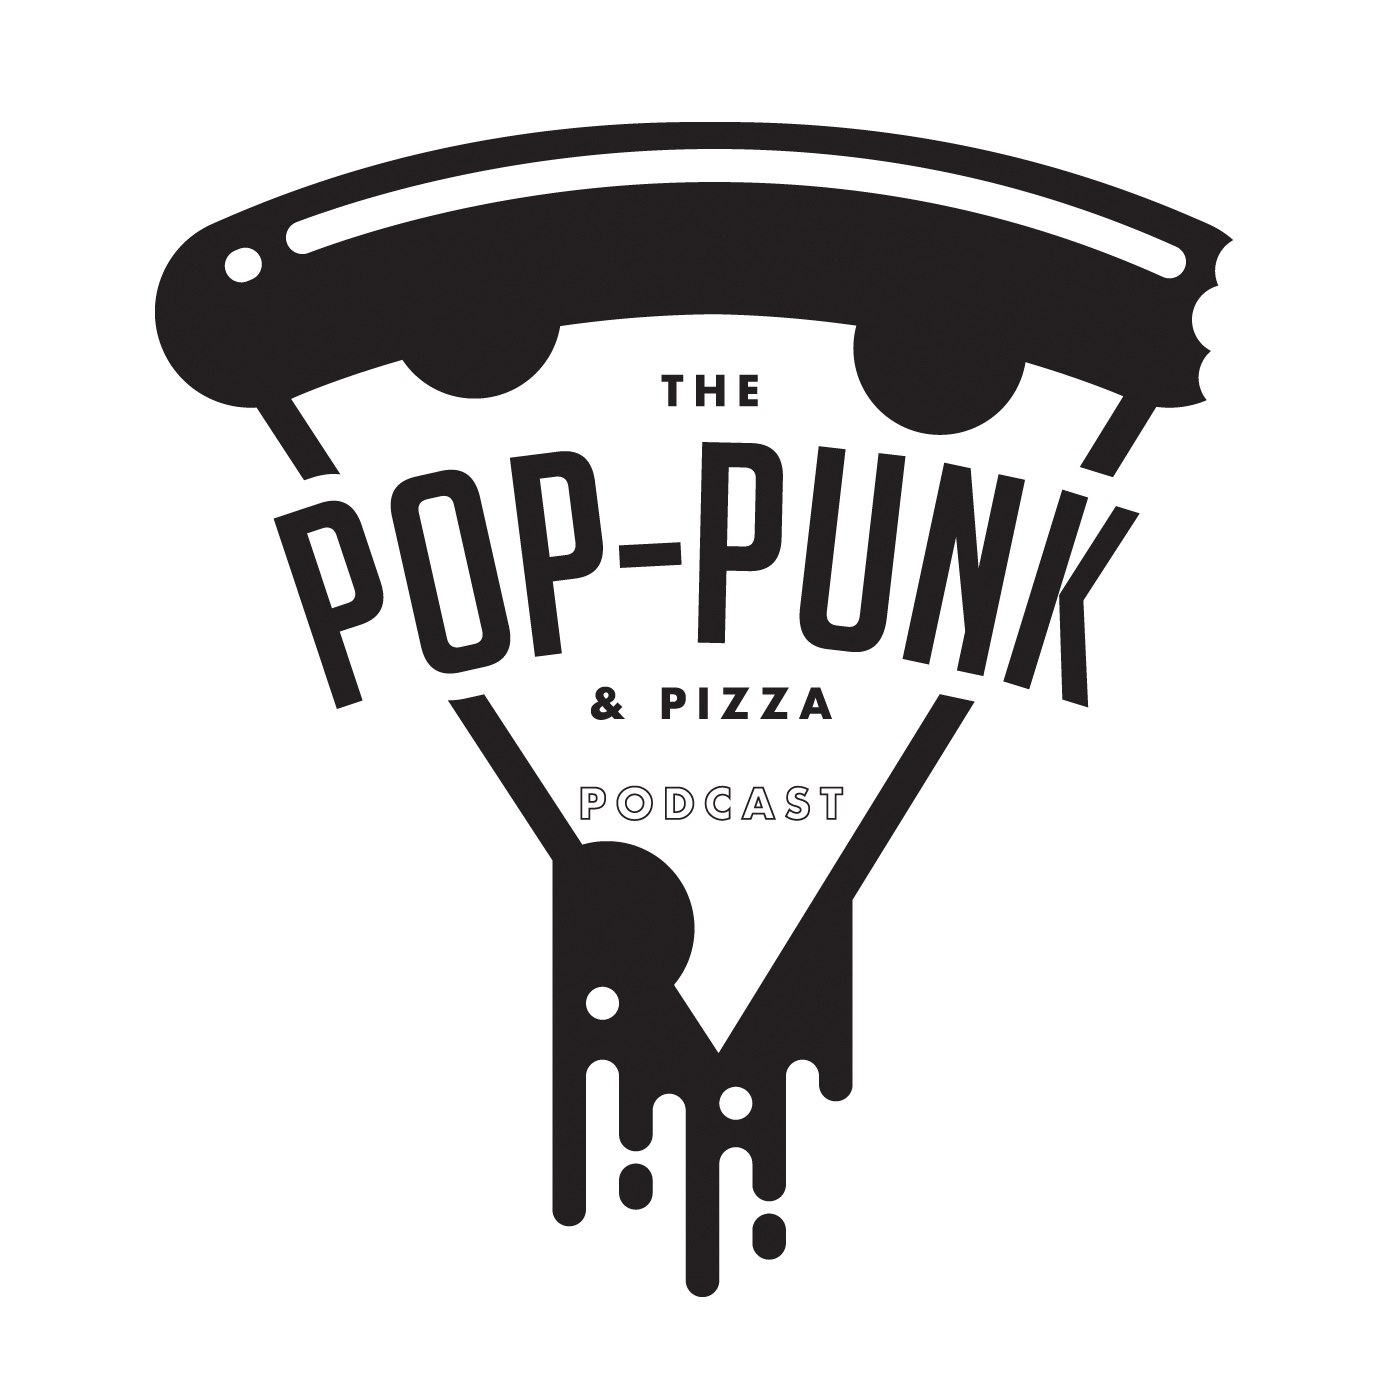 Pop-Punk & Pizza